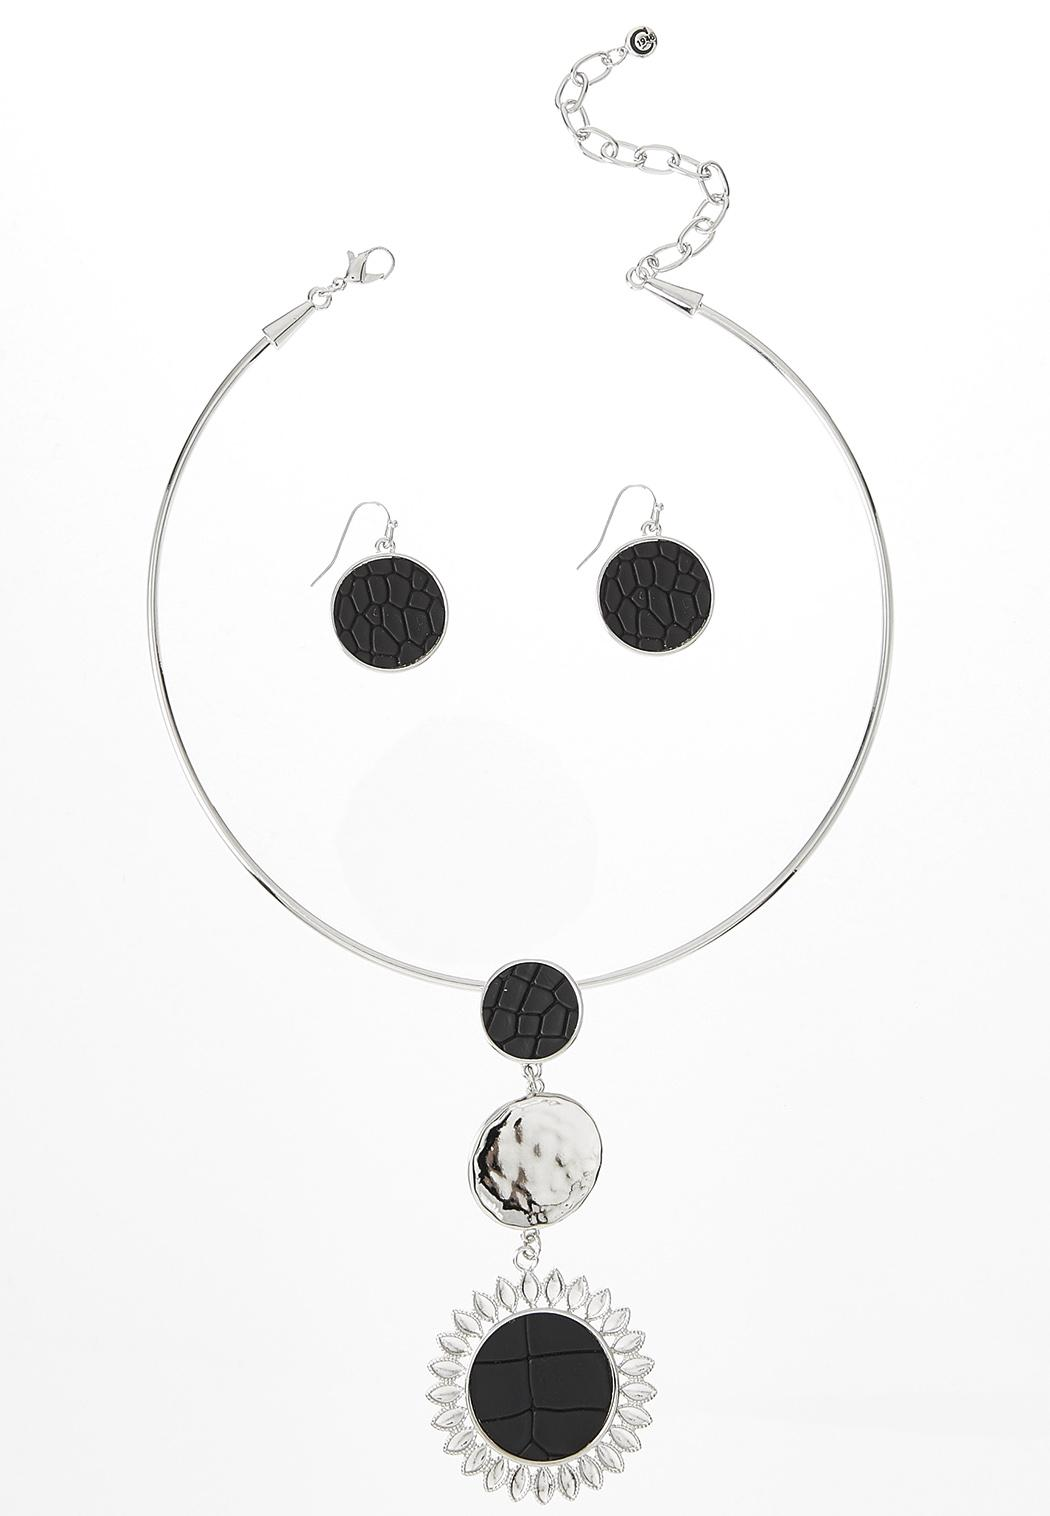 Crocodile Textured Necklace Earring Set